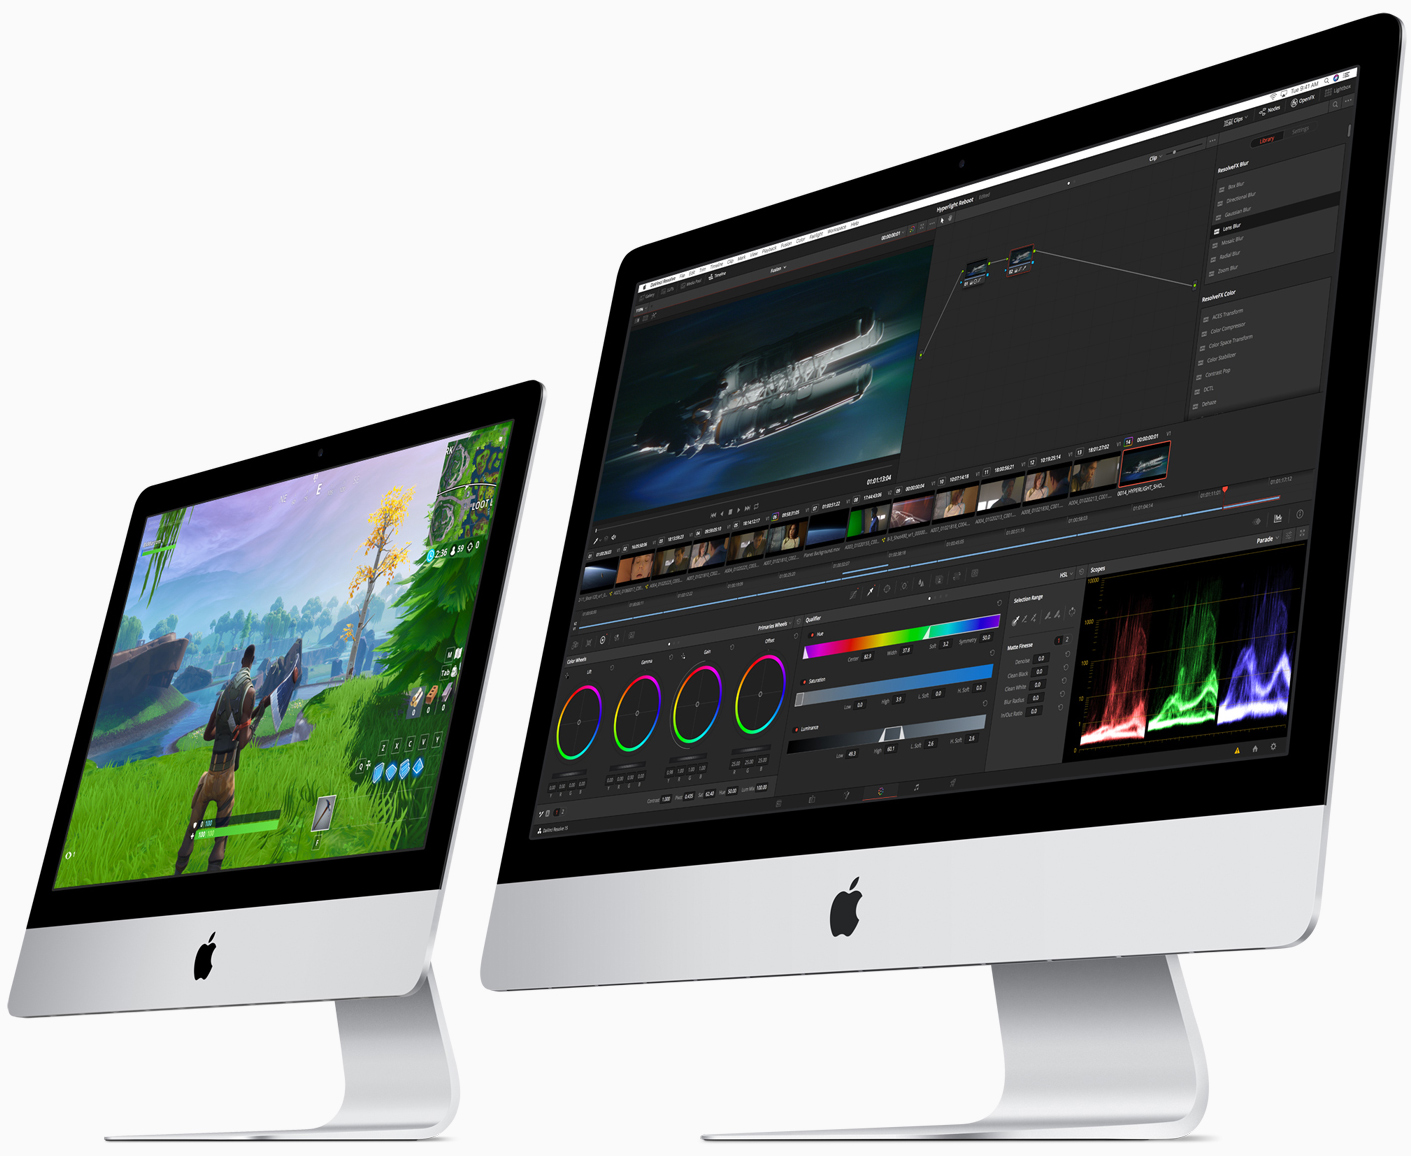 Apple Upgrades iMac and iMac Pro: More Cores, More Graphics